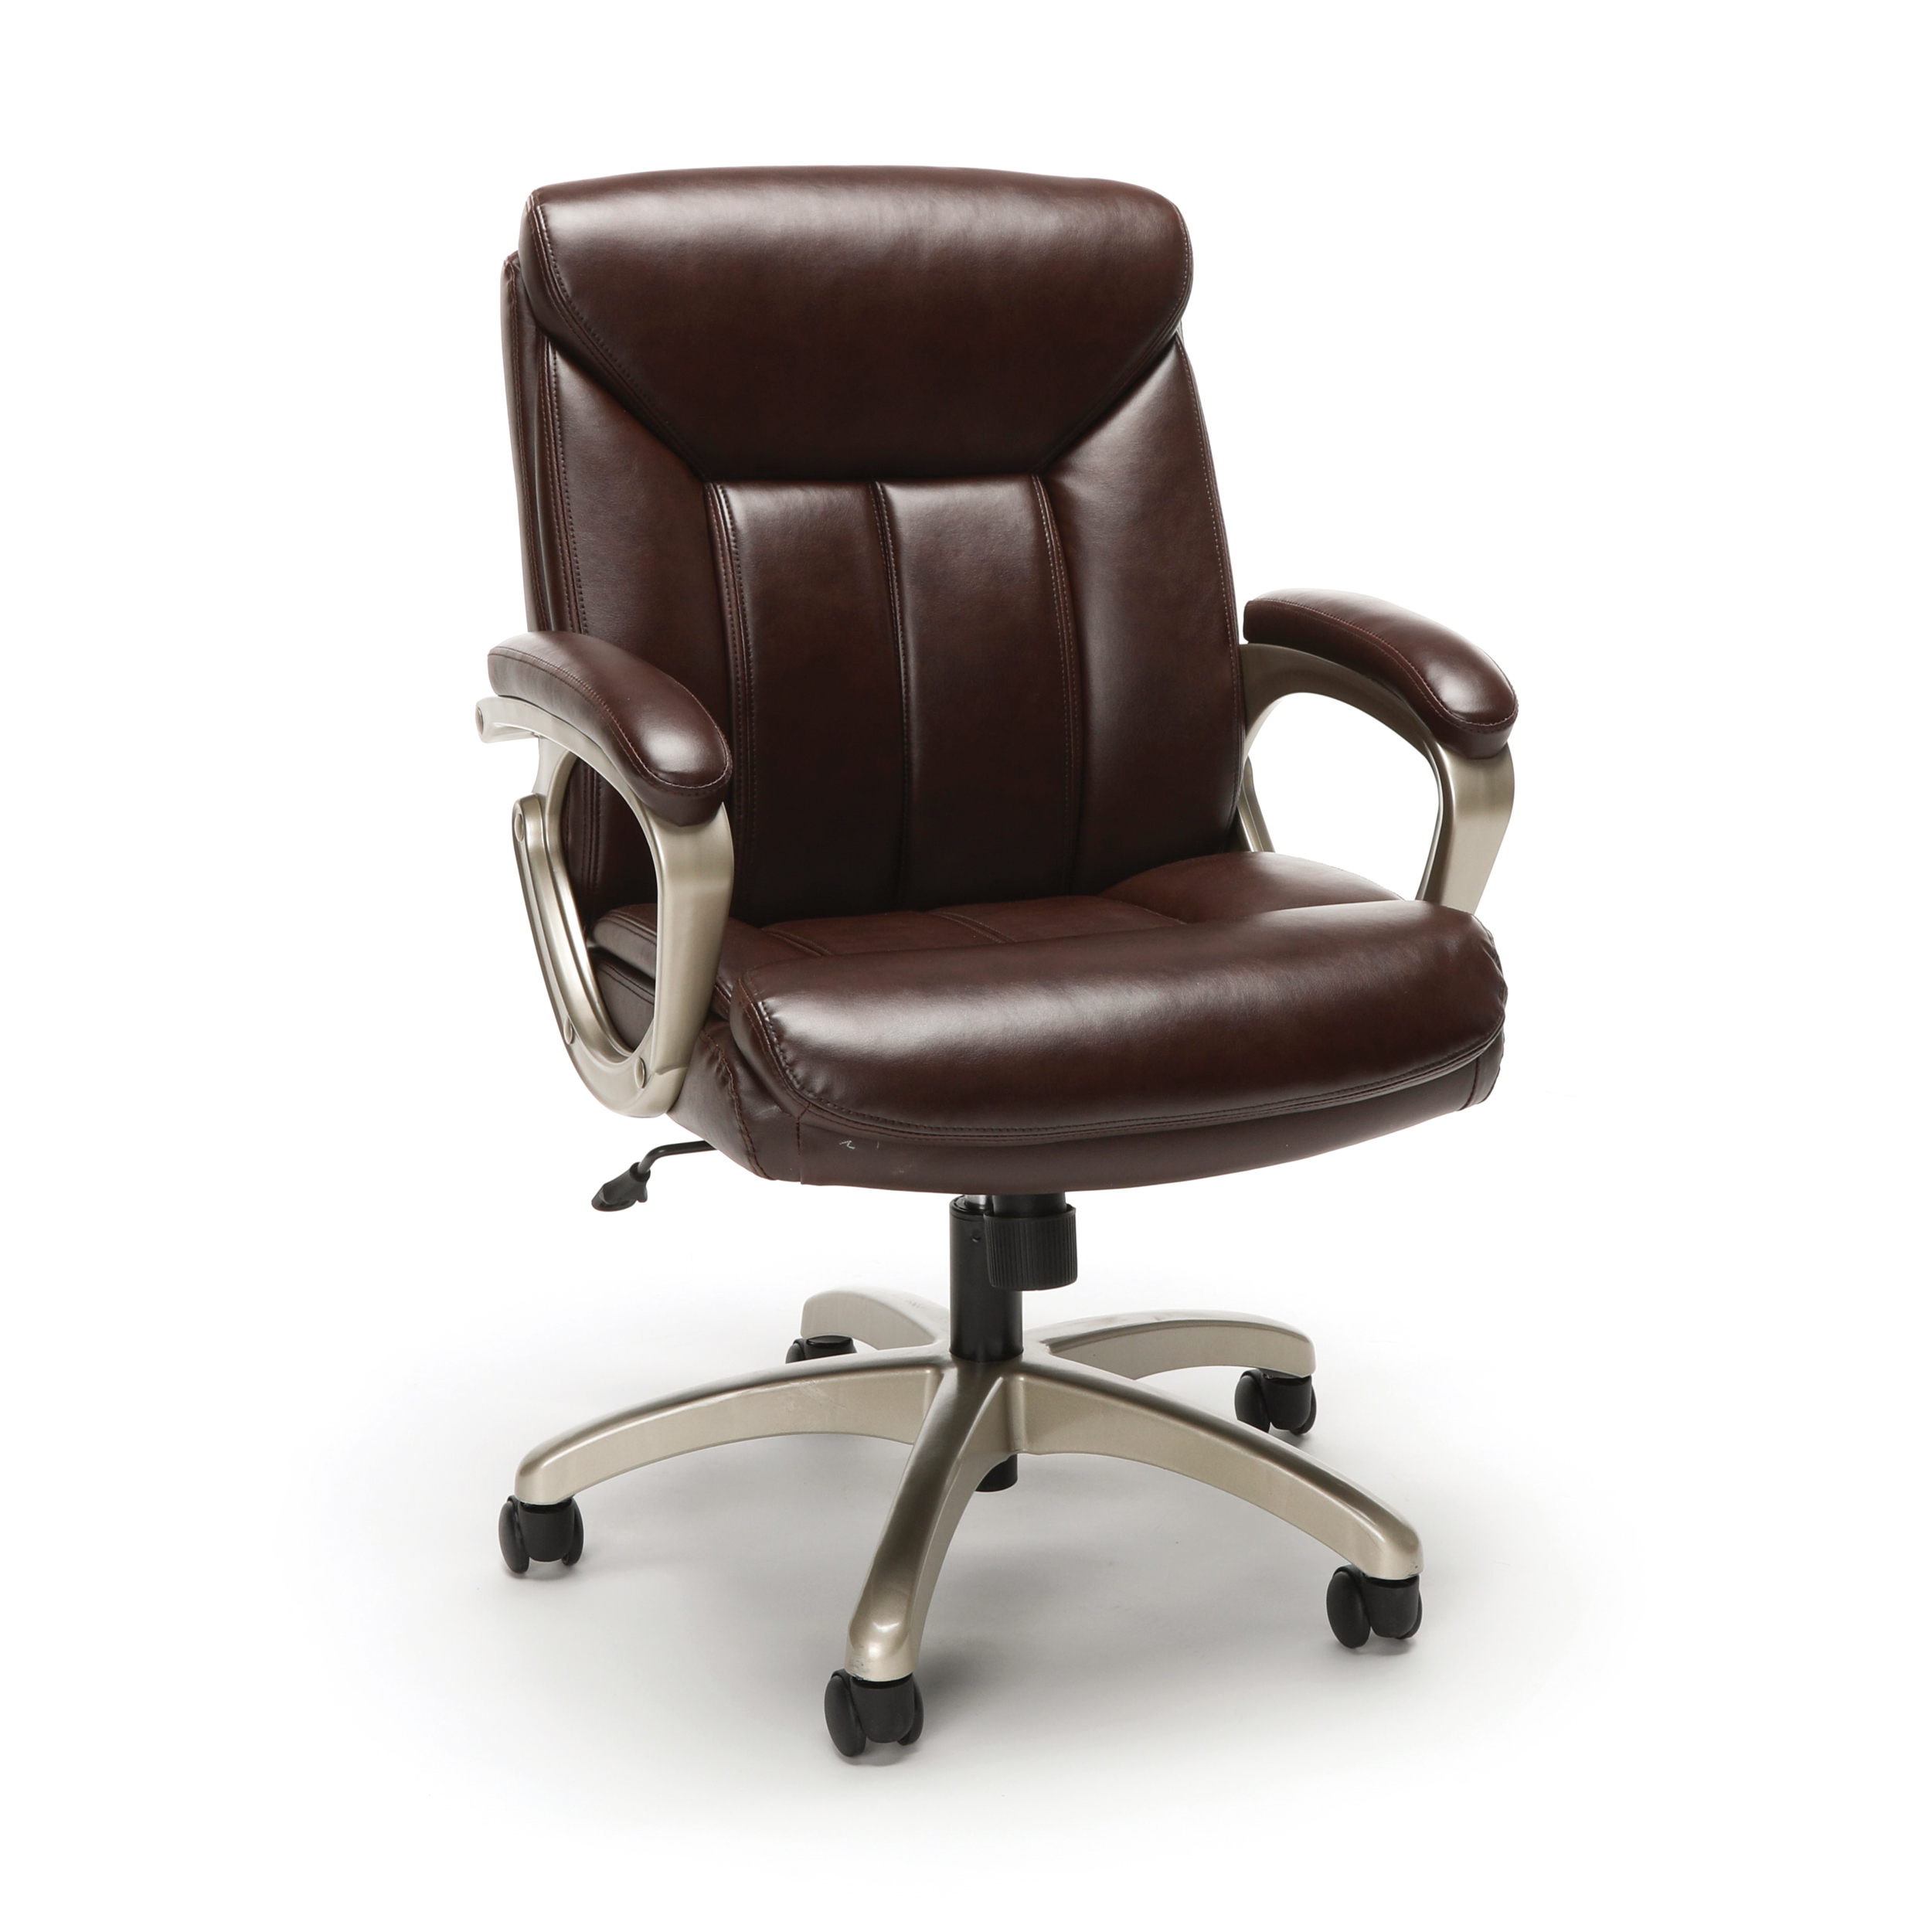 desk chair brown leather wedding covers hire huddersfield executive chairs essentials by ofm ess 6020 swivel office black with silver frame